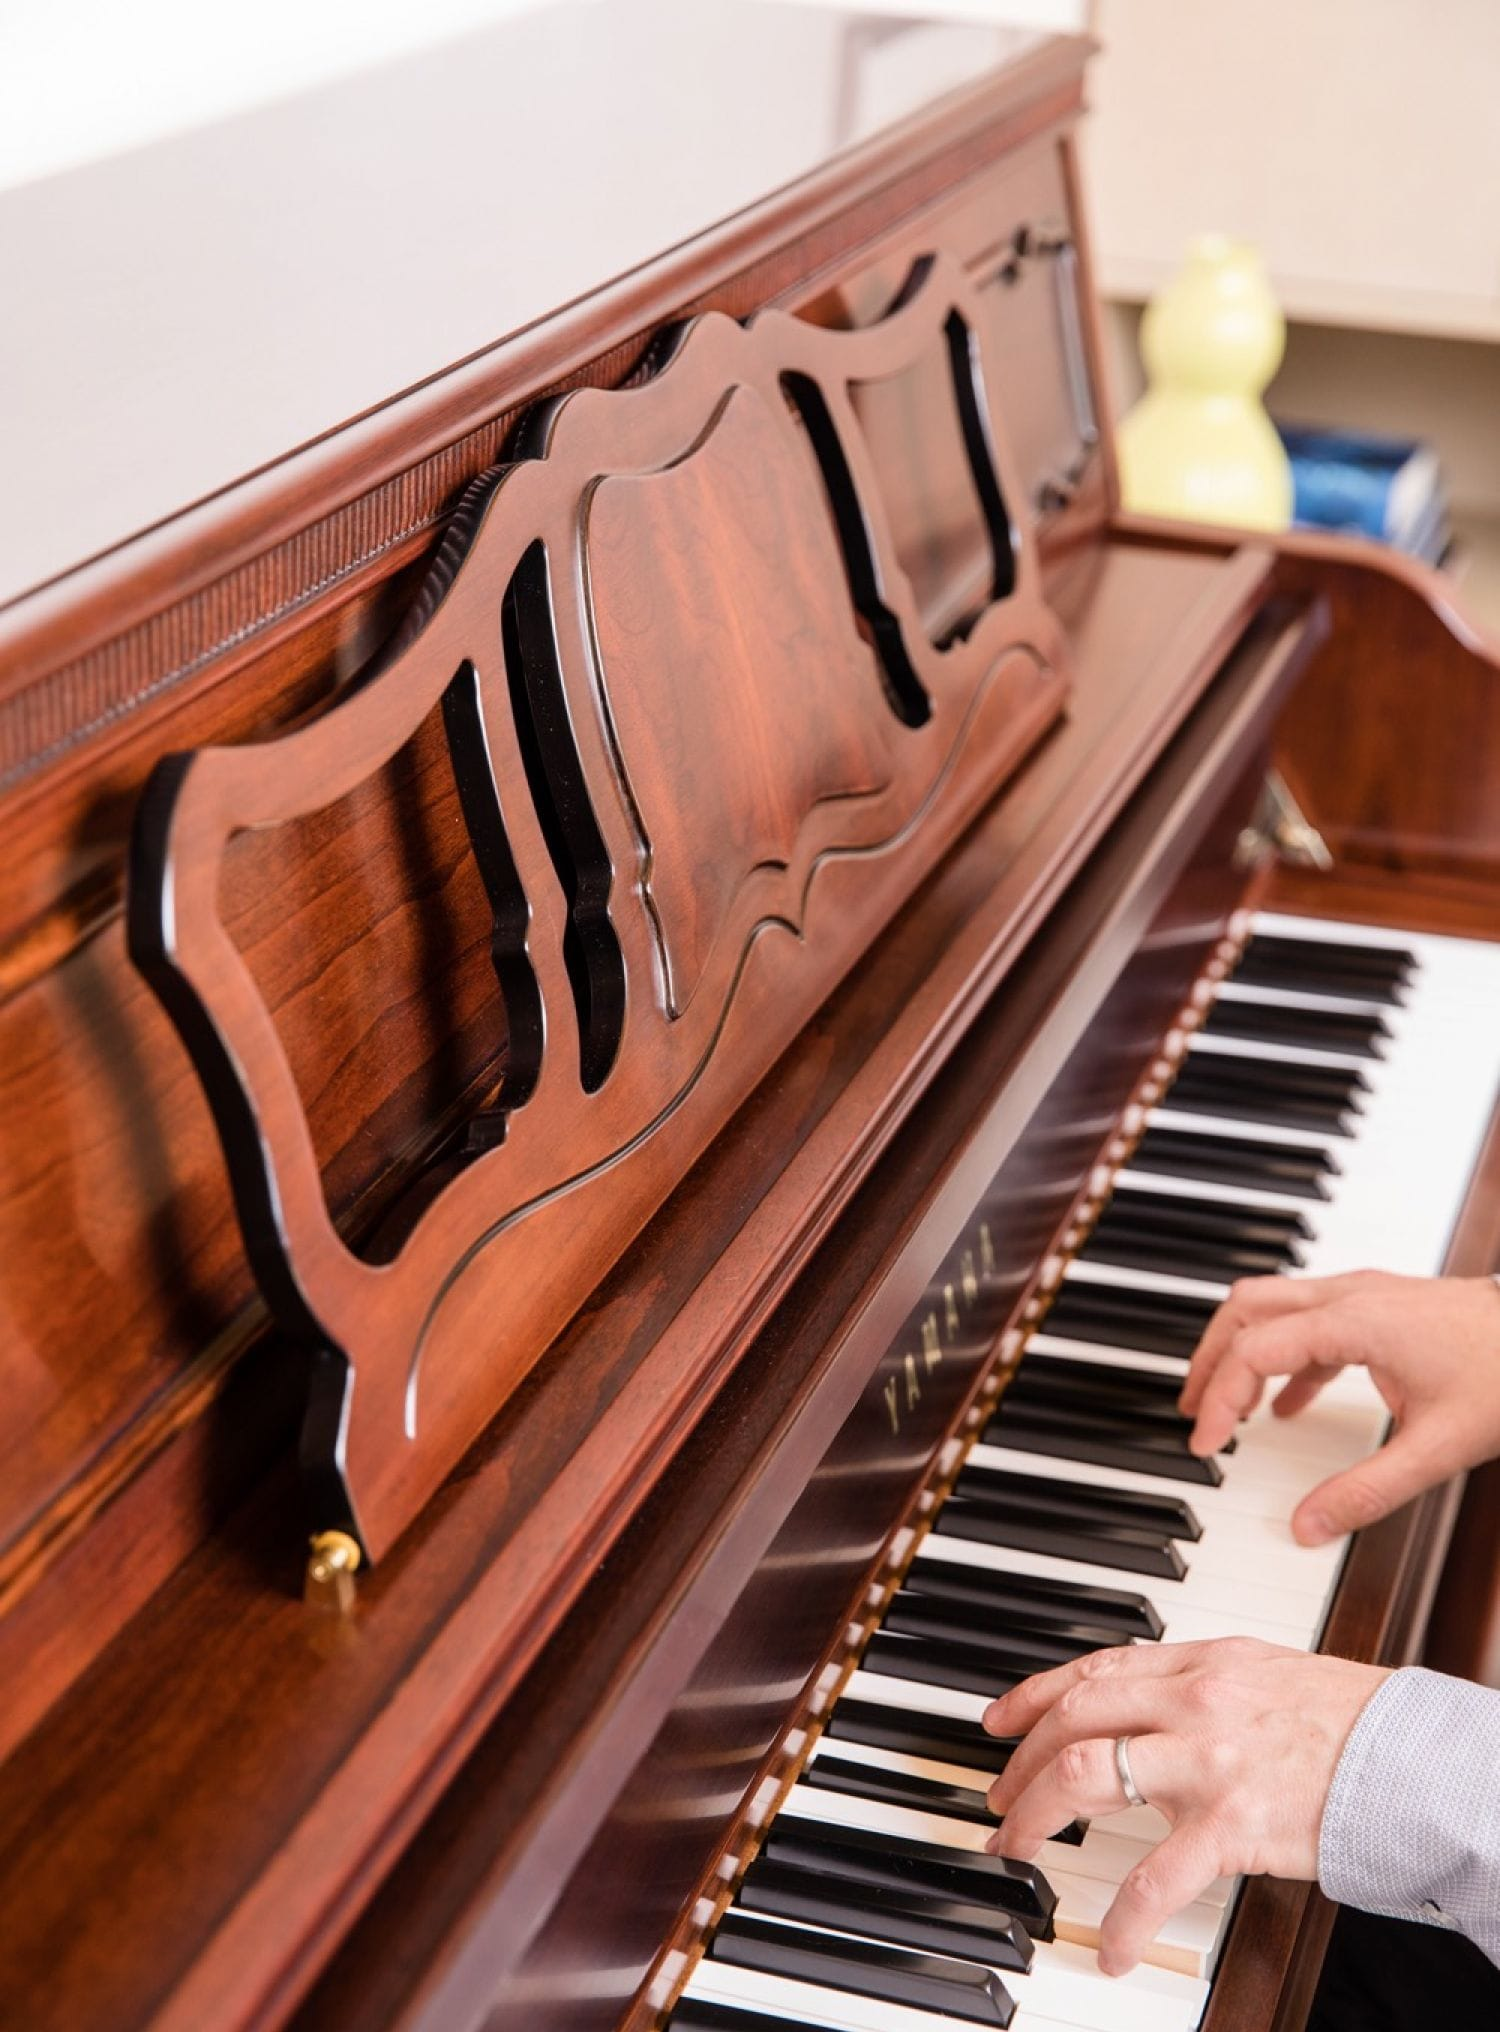 An adult male's hands playing the piano.